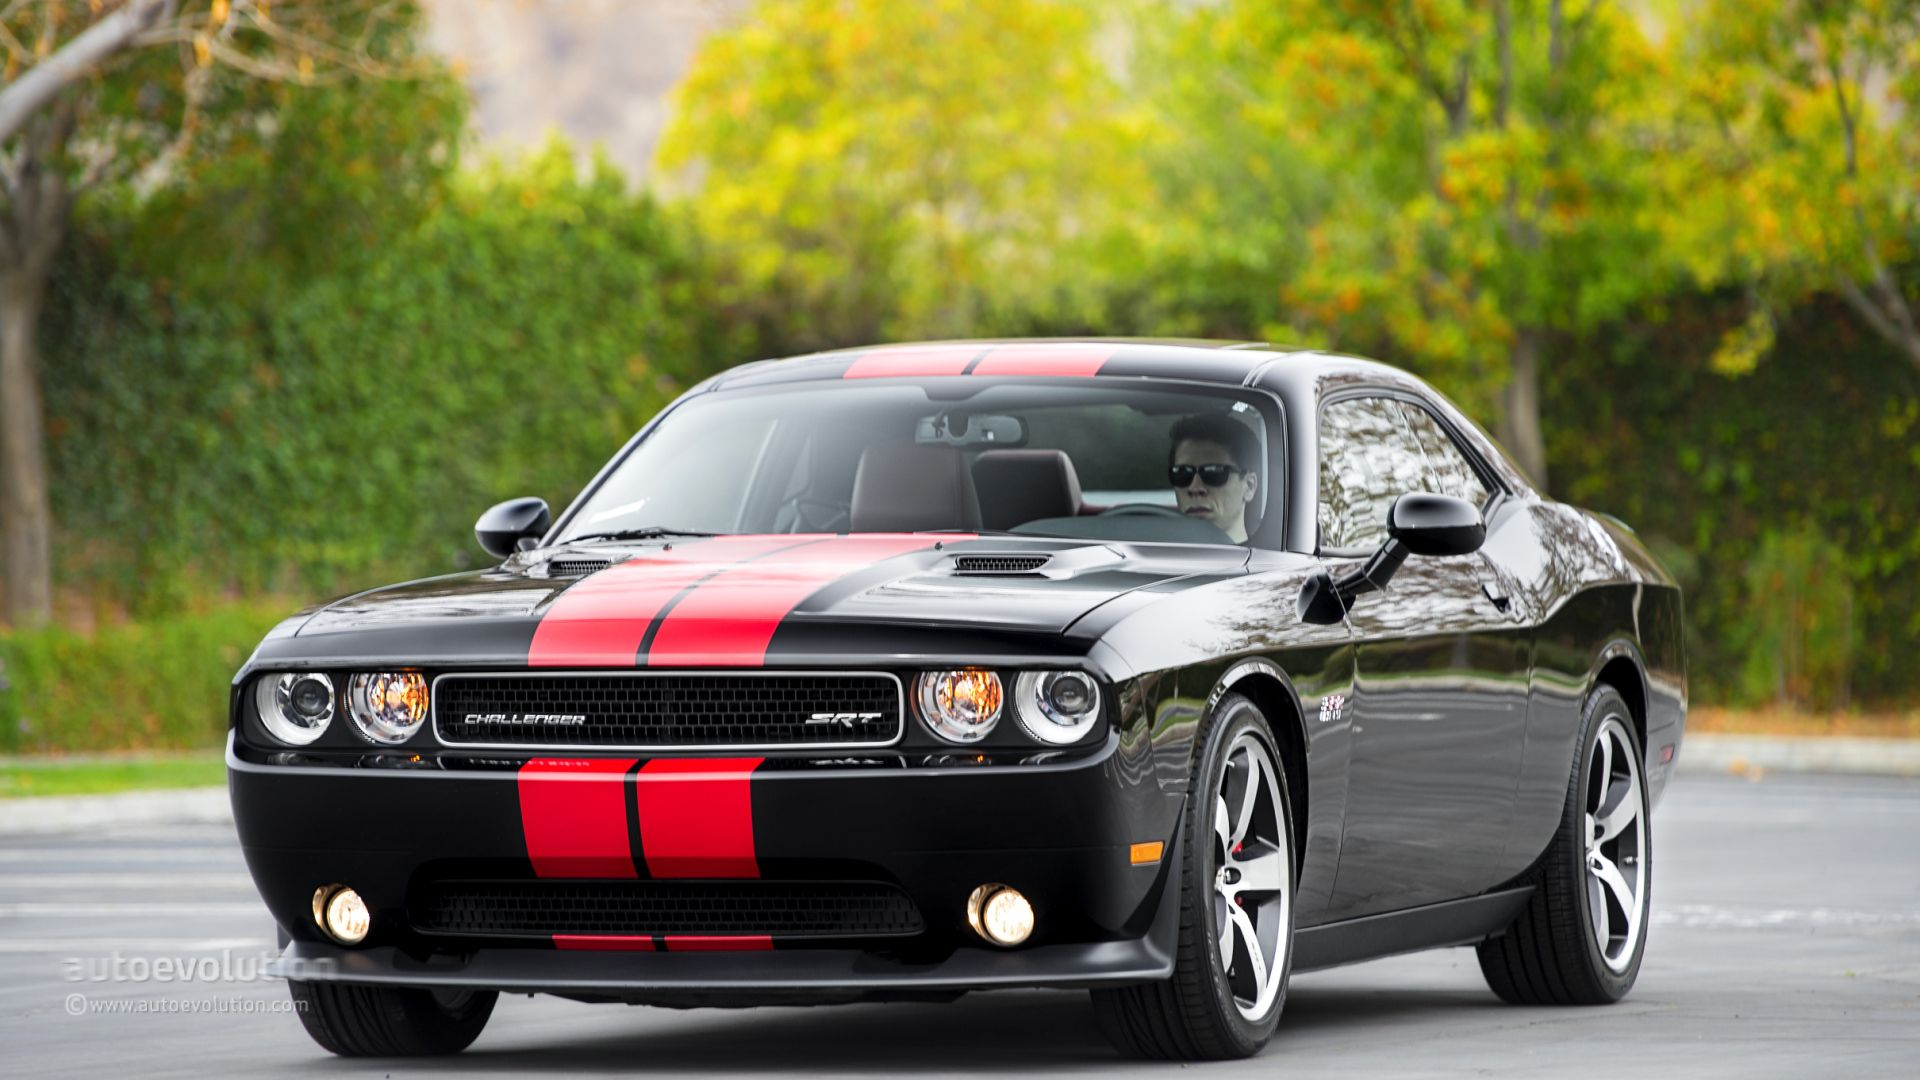 Beautiful Dodge Challenger SRT8 392